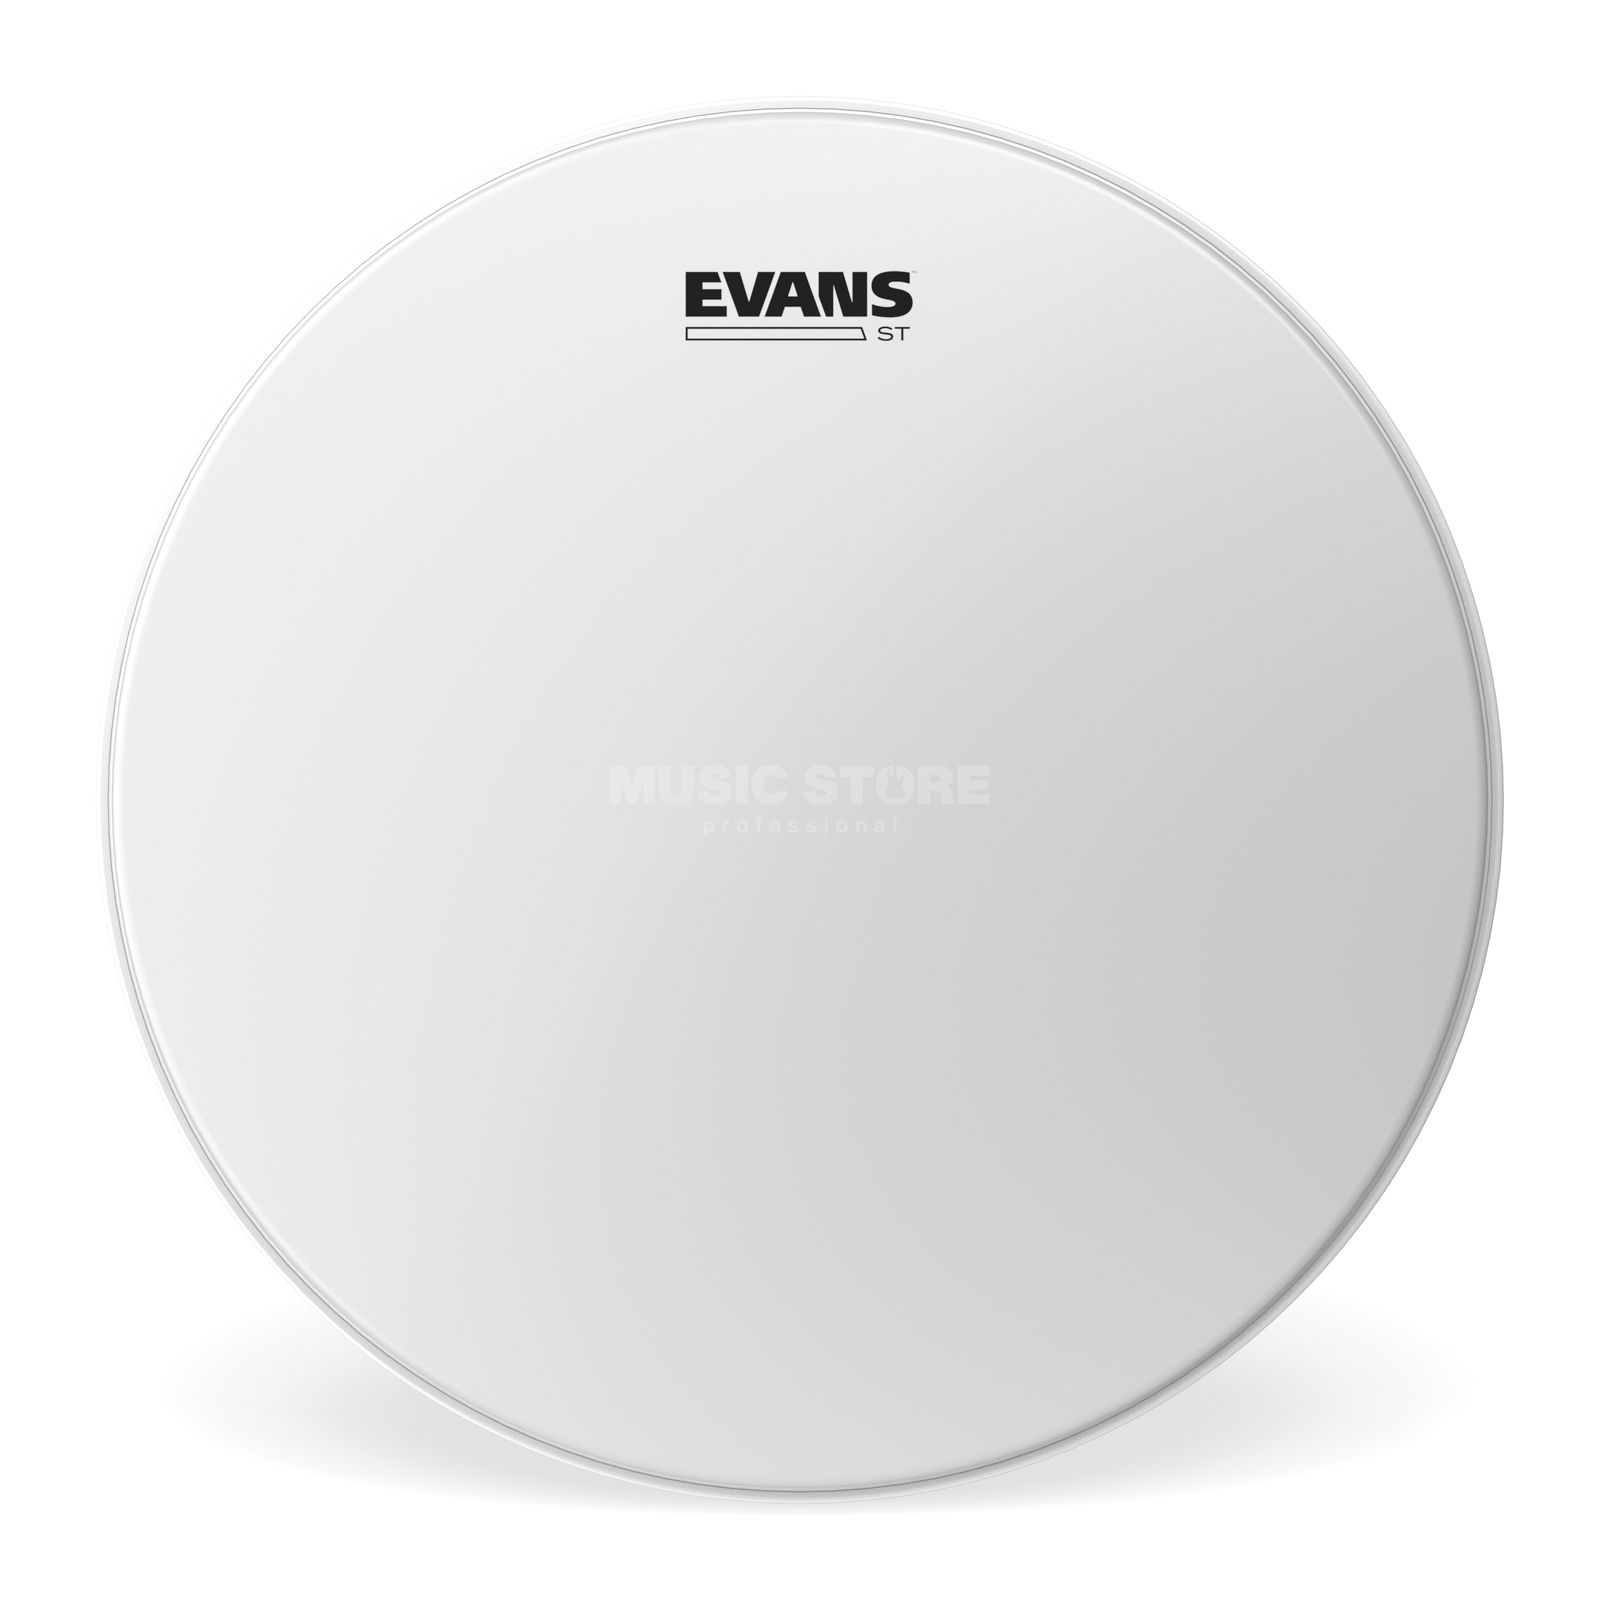 "Evans Super Tough 14"", B14ST, Snare Batter Produktbillede"